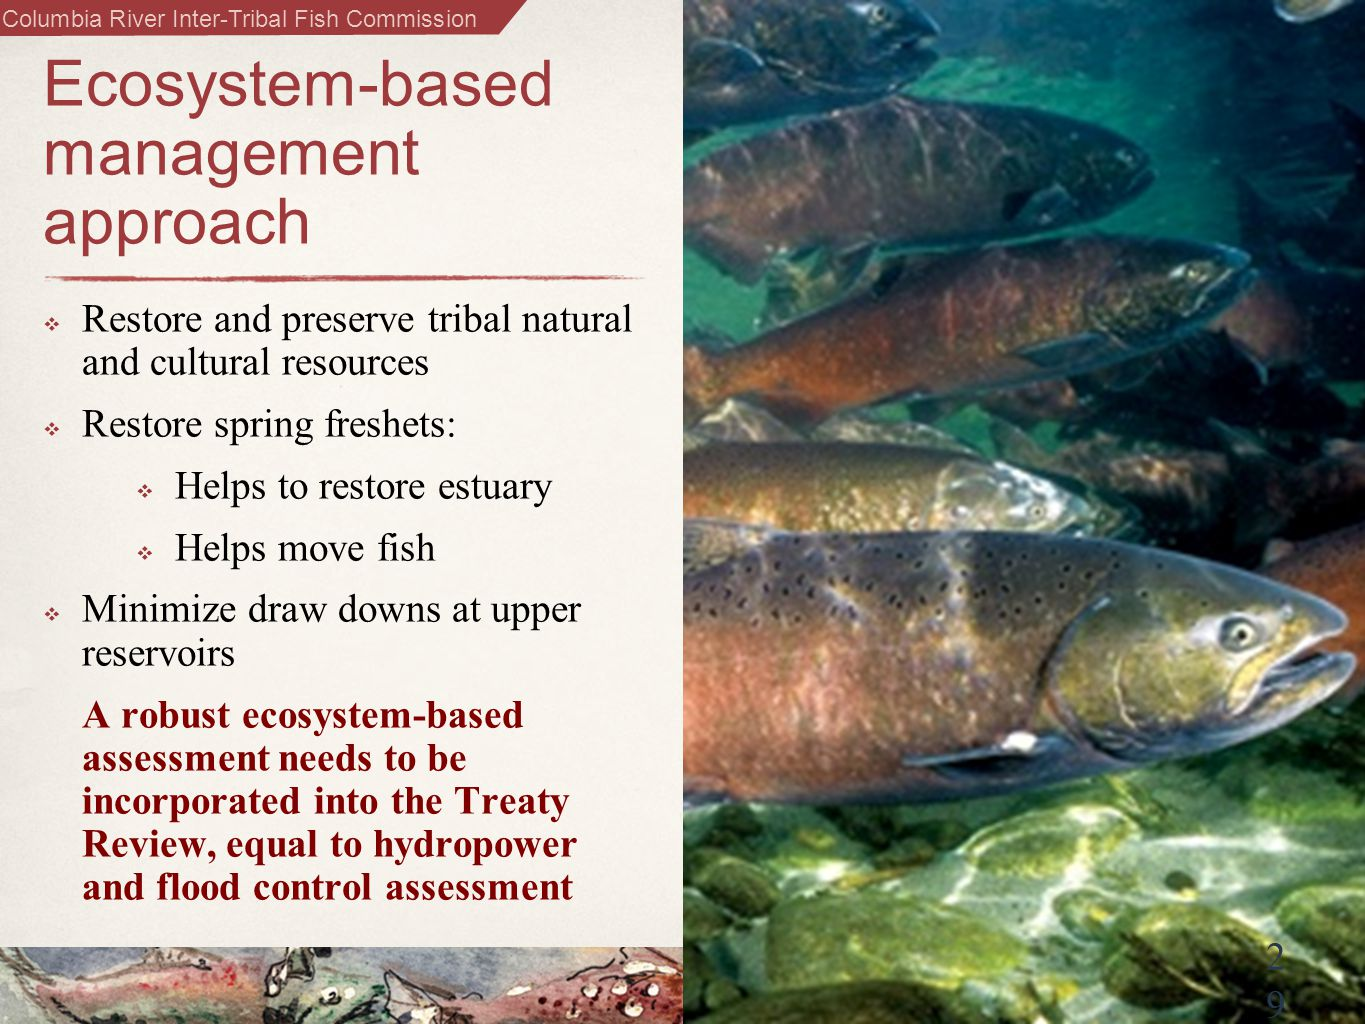 Columbia River Inter-Tribal Fish Commission 2929 Ecosystem-based management approach  Restore and preserve tribal natural and cultural resources  Restore spring freshets:  Helps to restore estuary  Helps move fish  Minimize draw downs at upper reservoirs A robust ecosystem-based assessment needs to be incorporated into the Treaty Review, equal to hydropower and flood control assessment